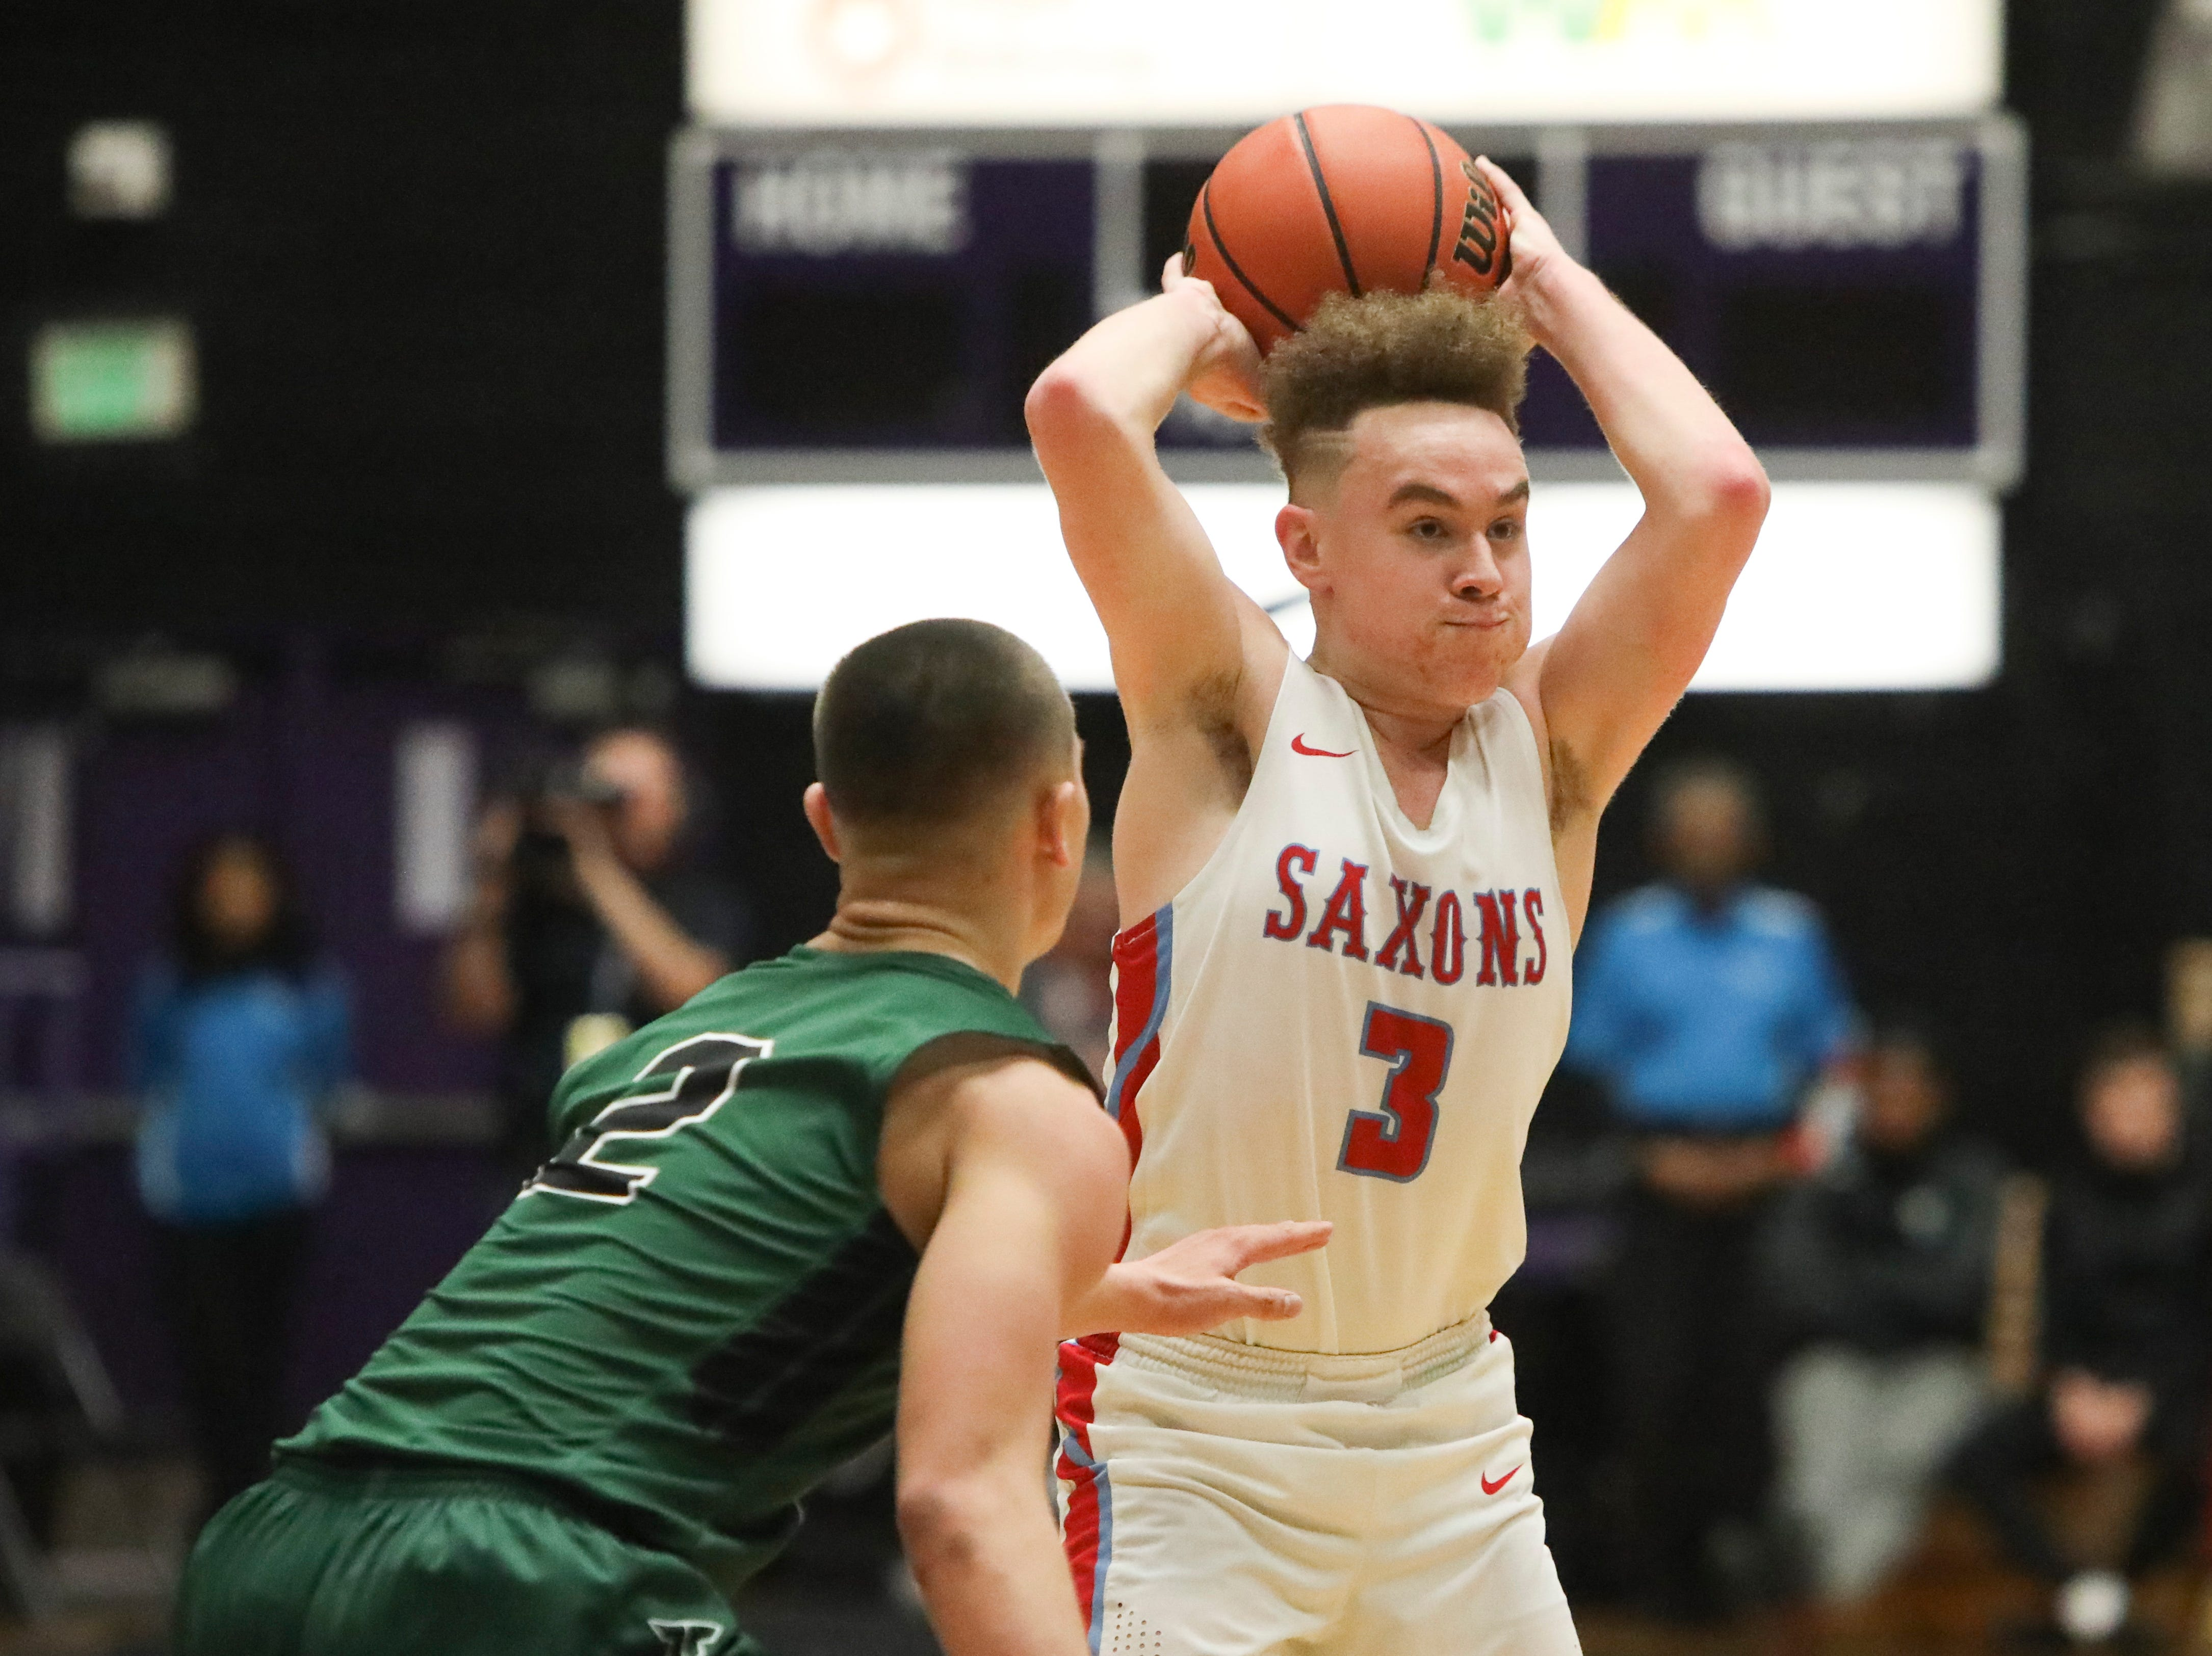 South Salem's Trey Galbraith (3) passes to a teammate during the OSAA 6A boys basketball state tournament quarterfinal against Tigard  on Wednesday, March 6 at Chiles Center.